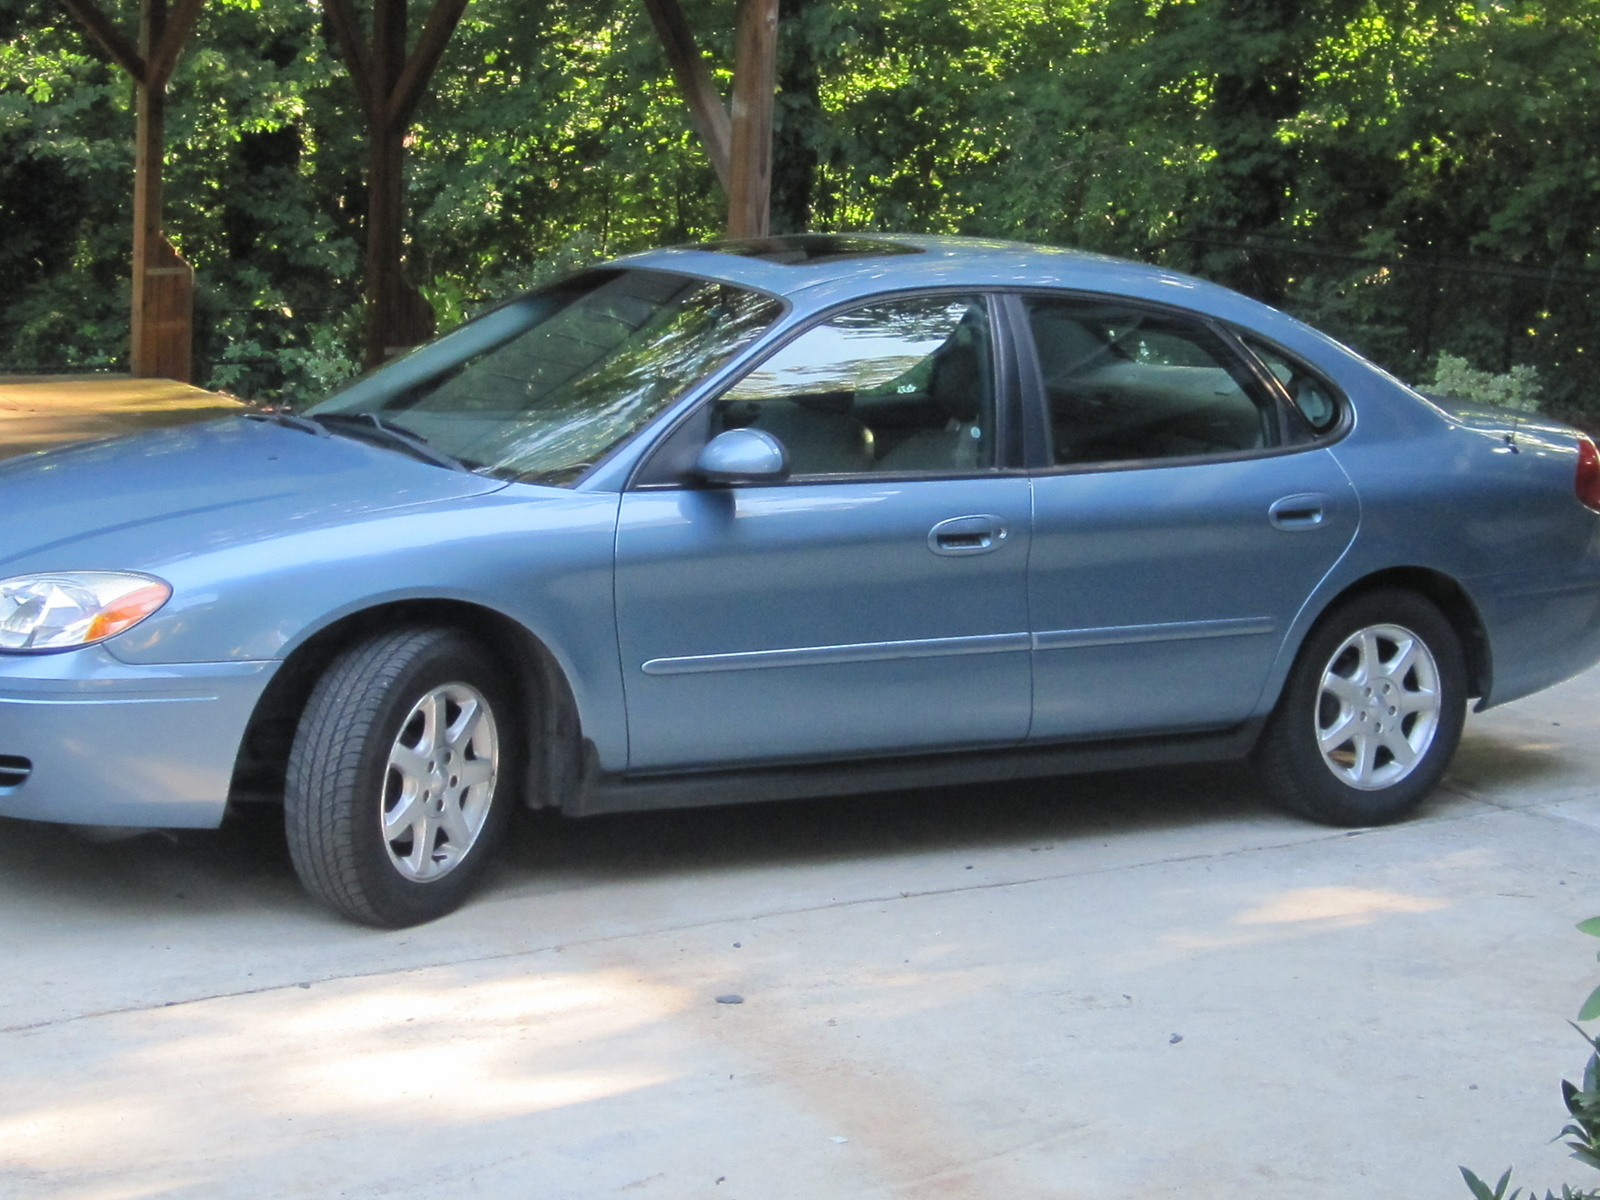 Ford Taurus 2006 photo - 4